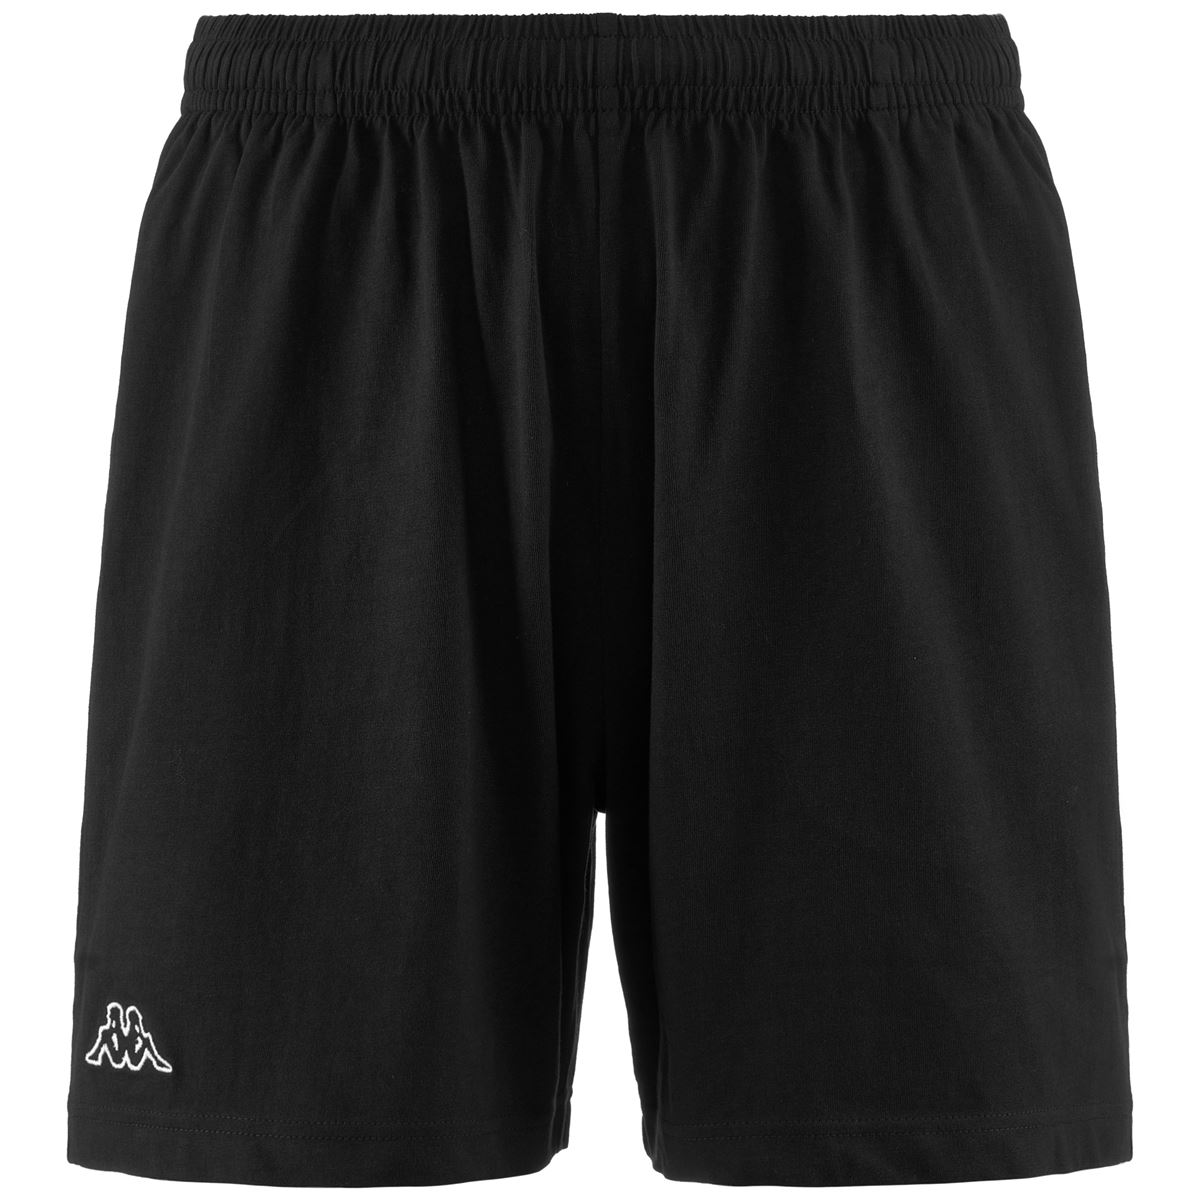 Shorts Kappa for man-303HZE0